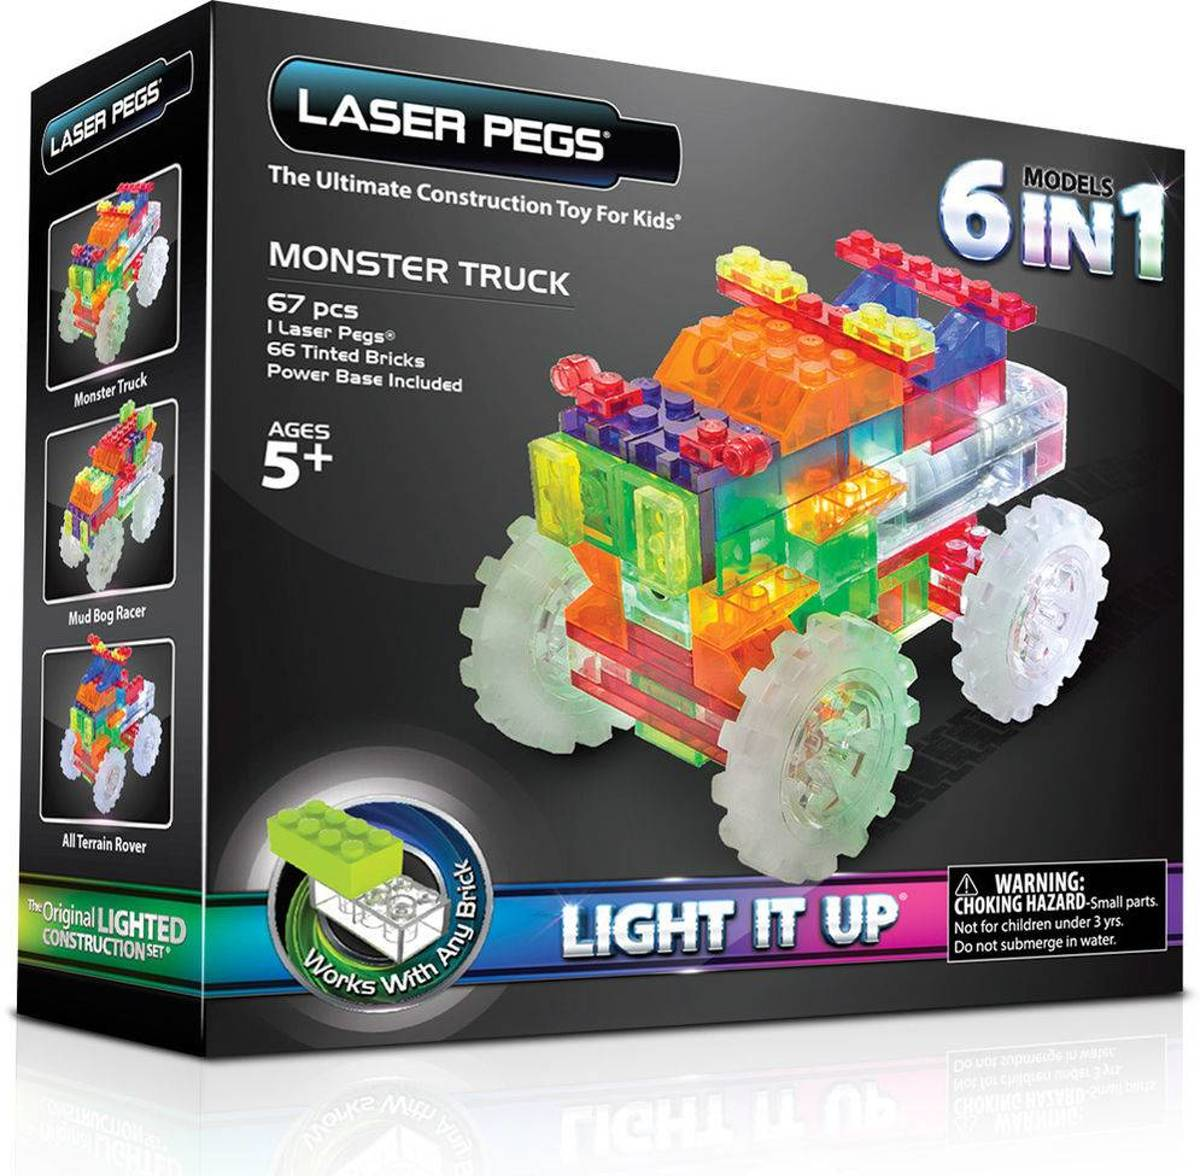 Laser Pegs Monster Truck 6 in 1